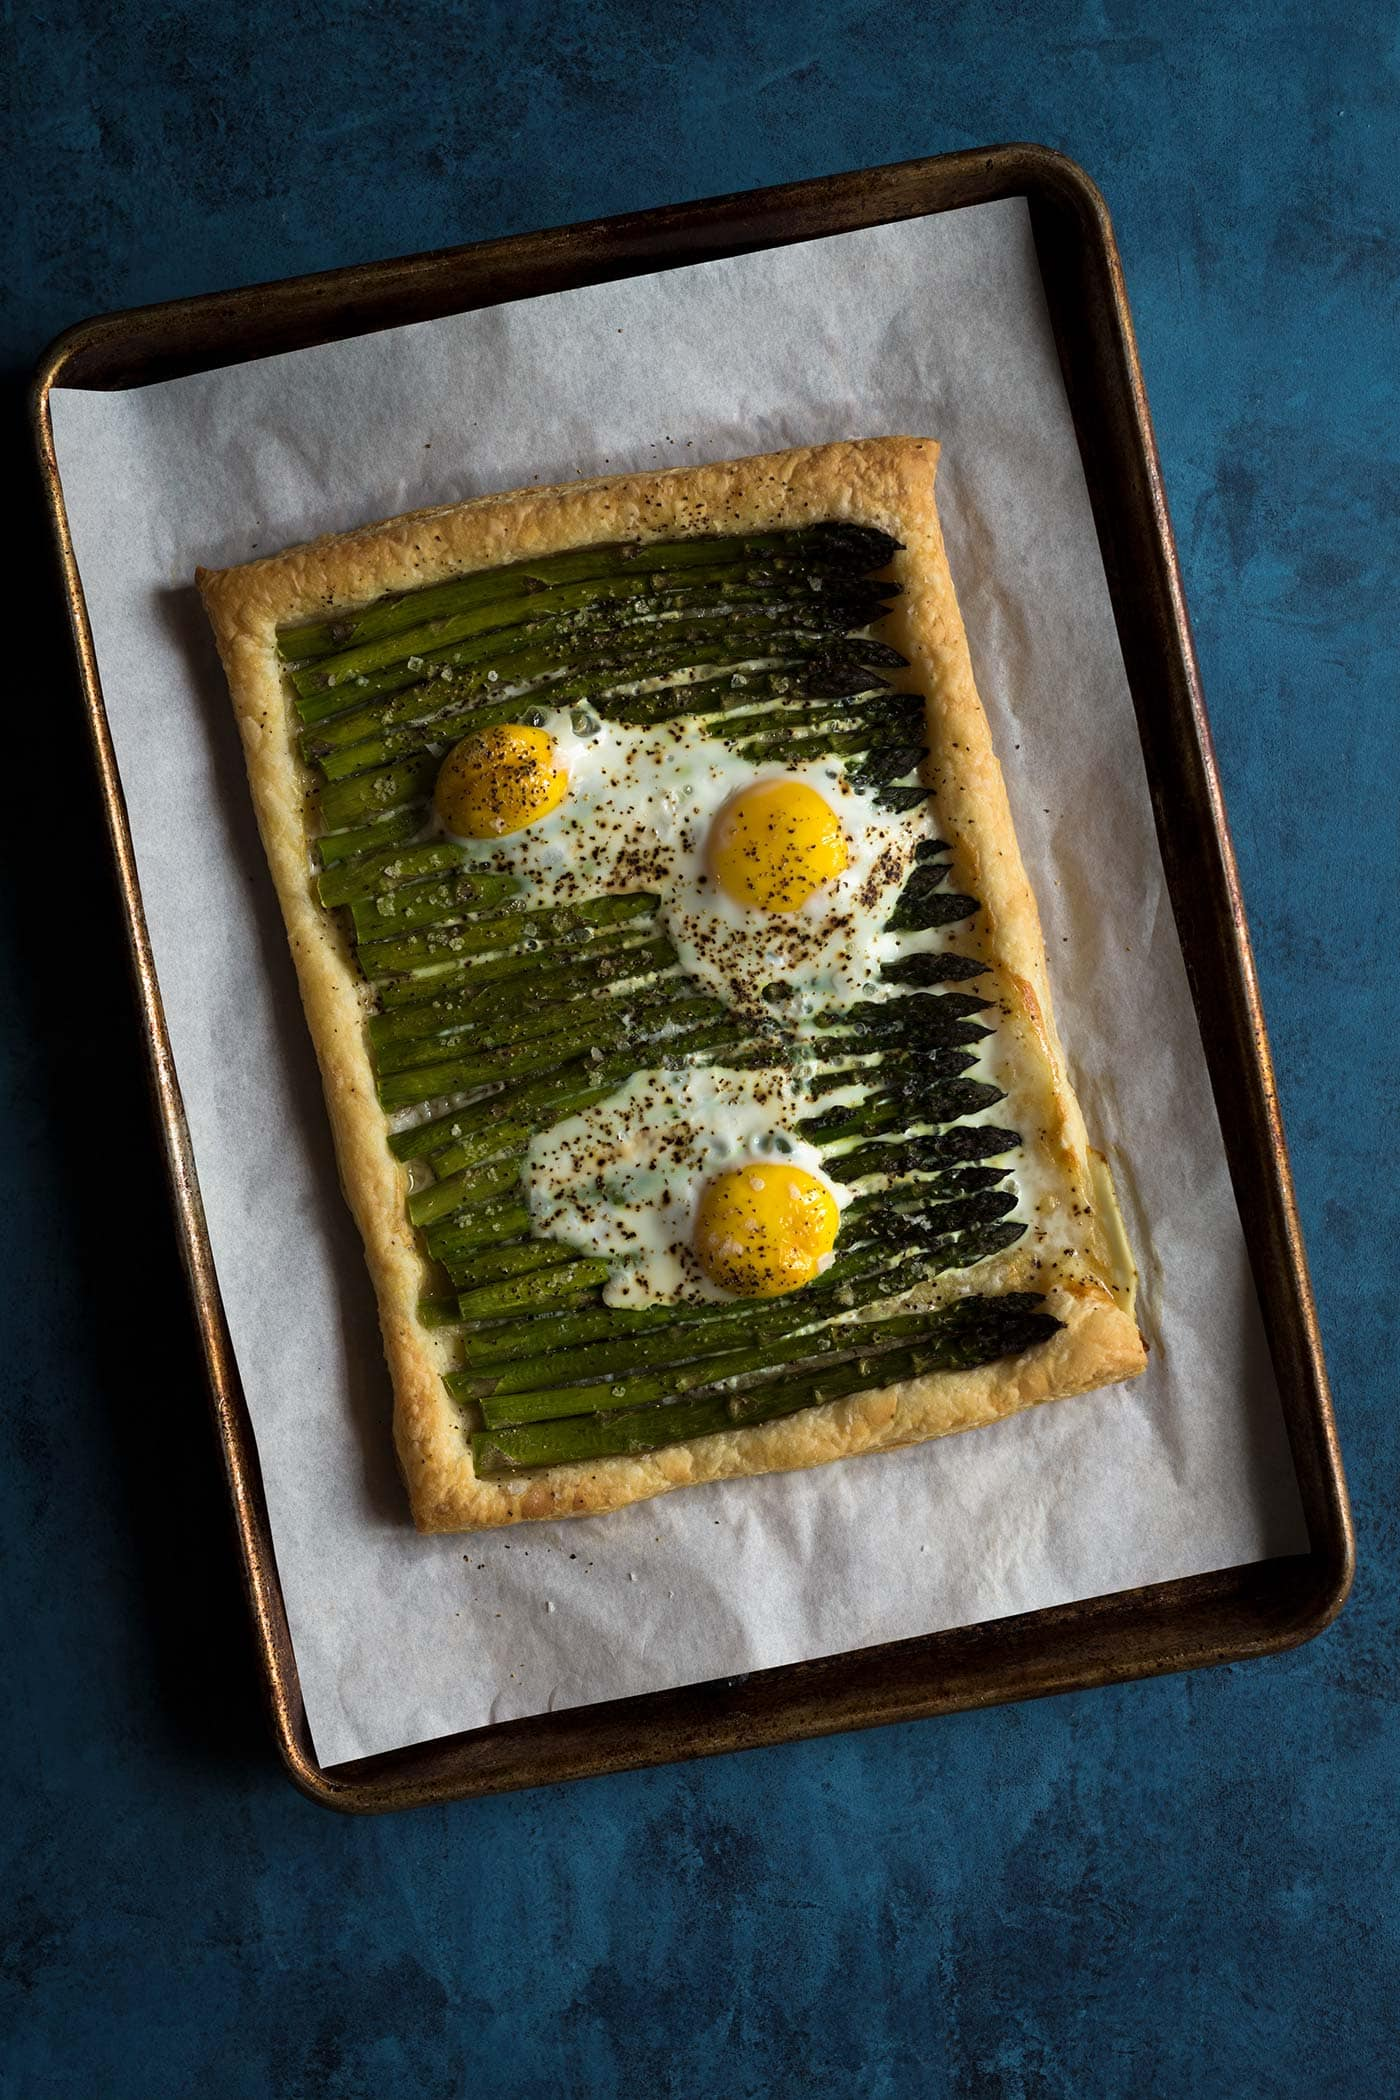 This asparagus egg tart comes together quickly with only 5 ingredients, and is perfect for spring and summer gatherings!